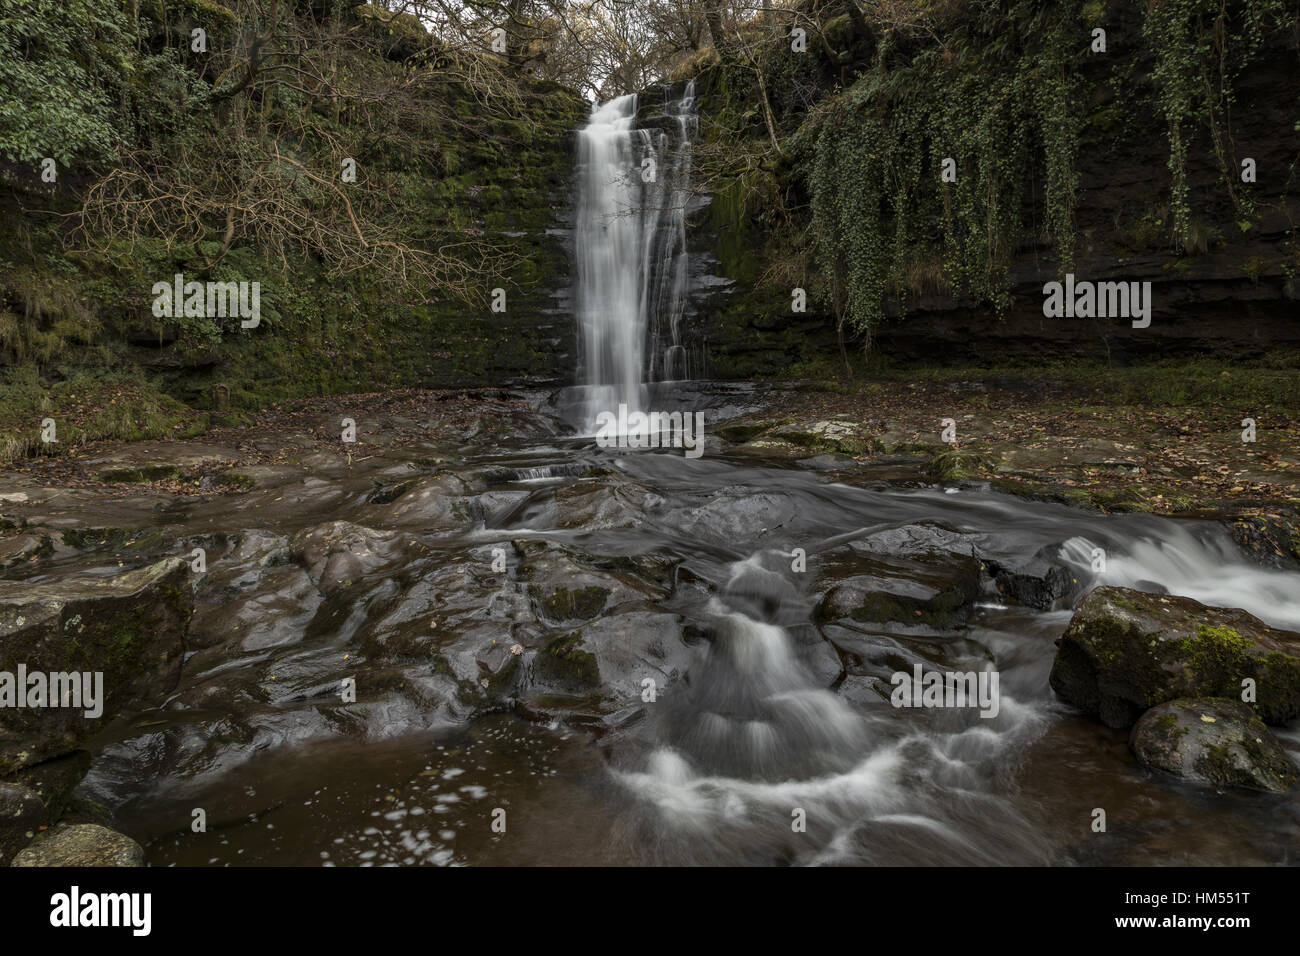 One of the Blaen y Glyn Waterfalls, on the River Caerfanell, (tributary of the Usk),  Brecon Beacons. - Stock Image